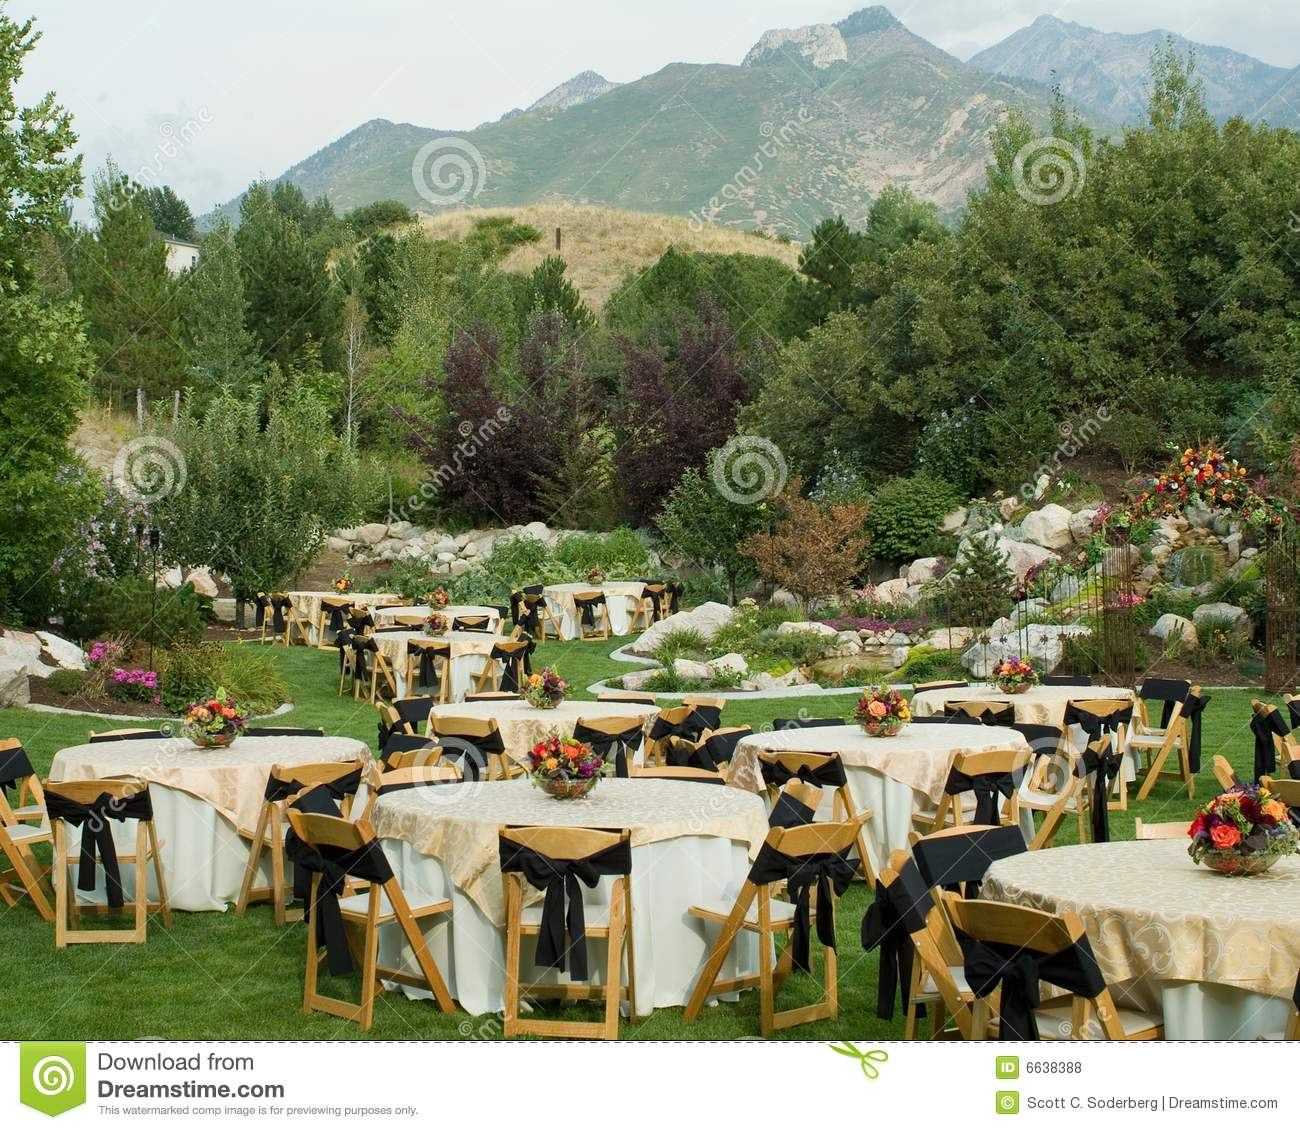 Outdoor Event Set Up Royalty Free Stock Photos Image  : outdoor event set up 6638388 <strong>Broken Glass  Clip Art</strong> from www.dreamstime.com size 1300 x 1130 jpeg 266kB